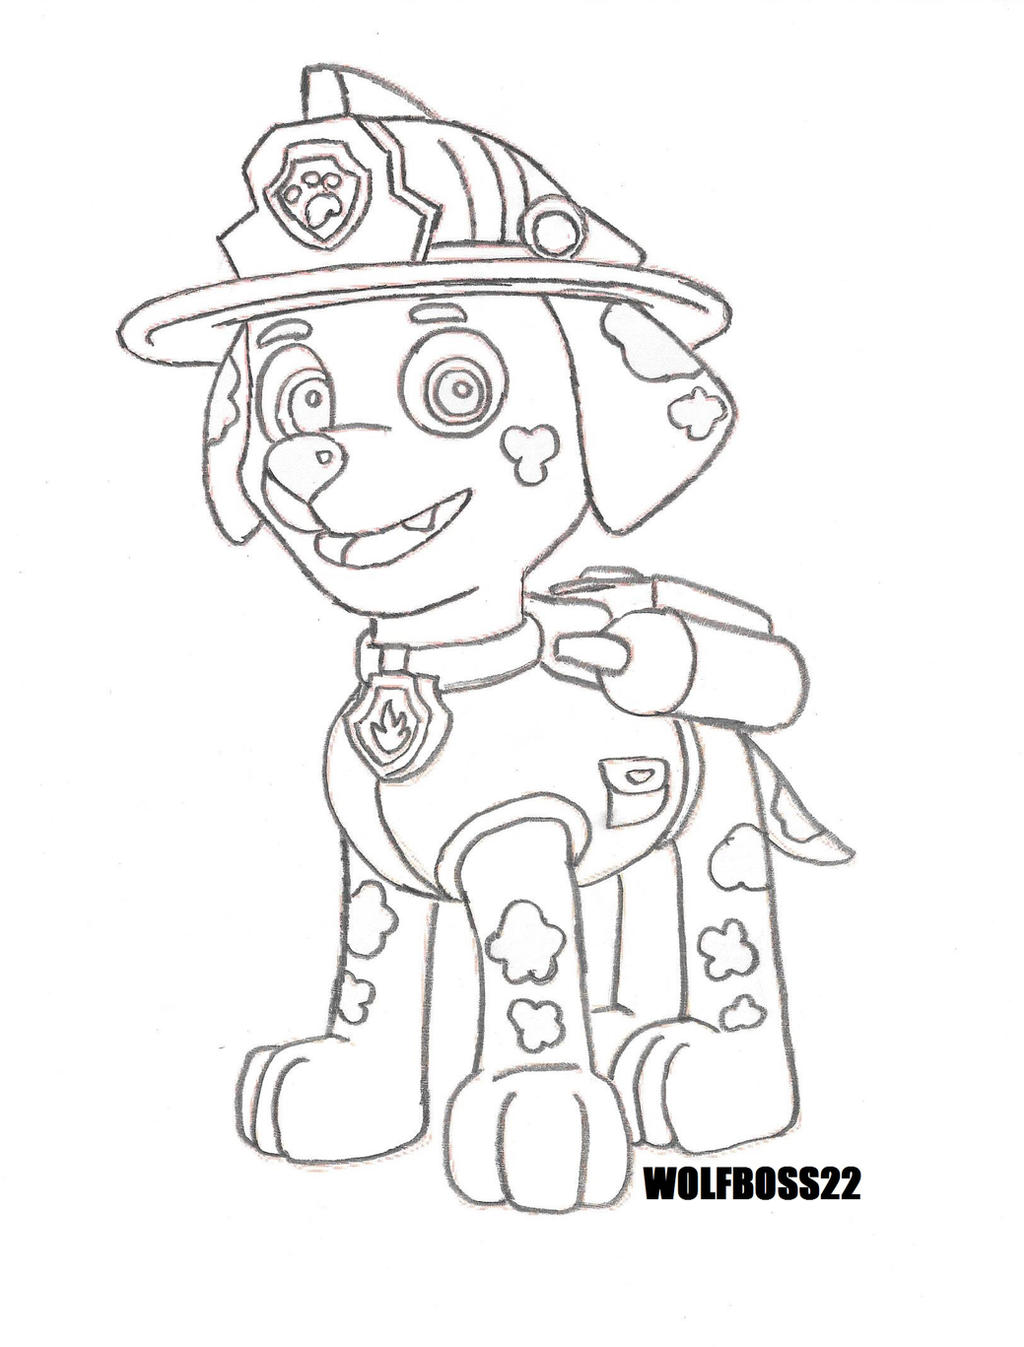 Paw patrol marshall line art by wolfboss22 on deviantart for Marshall paw patrol coloring pages